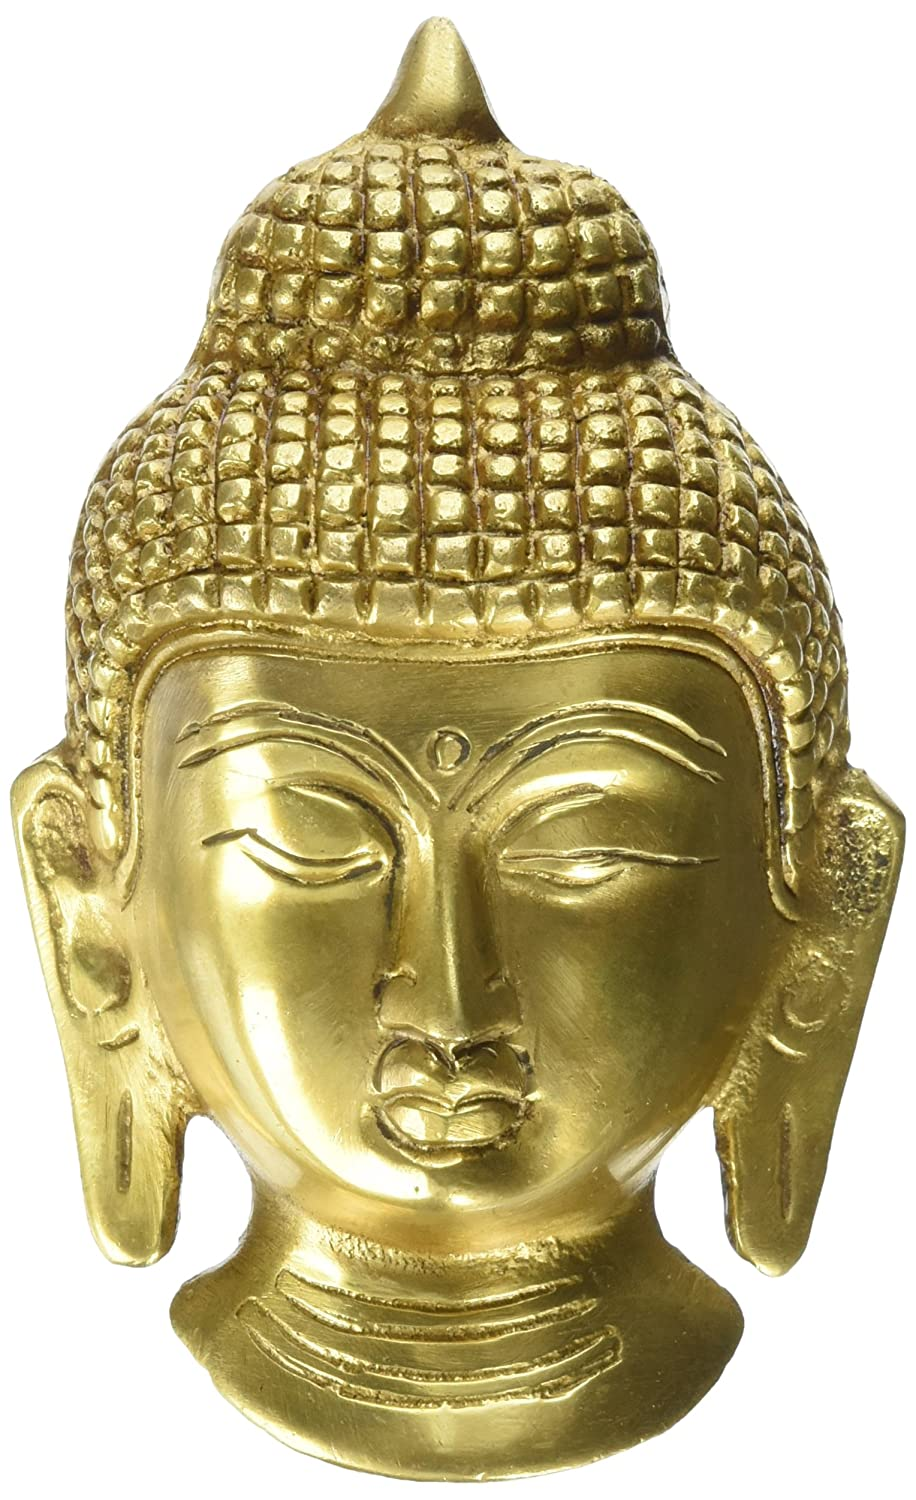 Amazon.com: Buddha Head Wall Sculpture Buddhism Decor Brass Metal ...